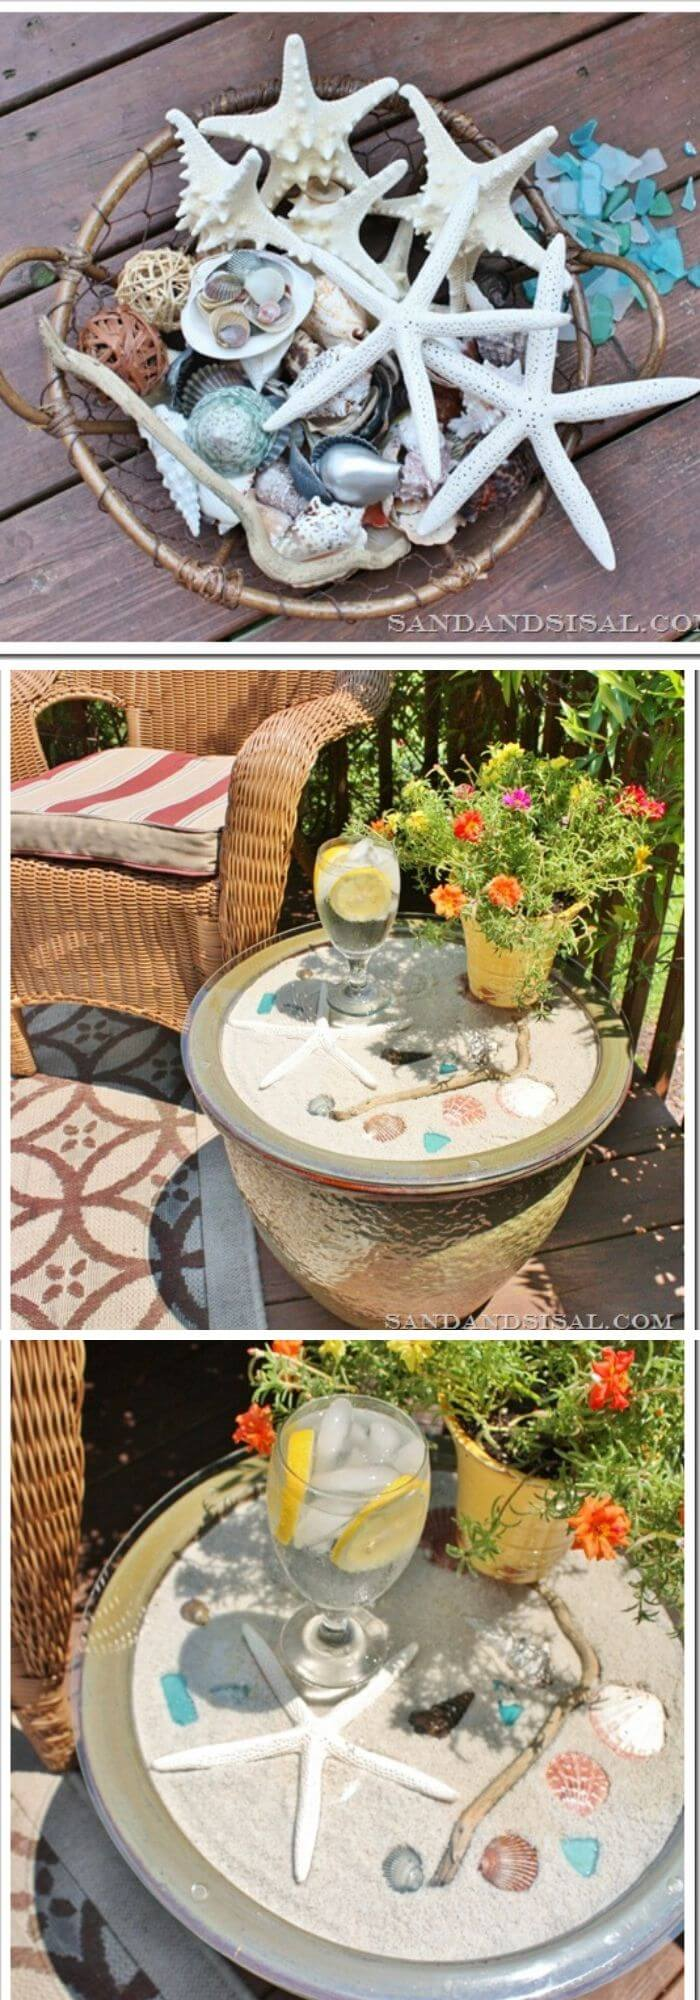 Ceramic planter side table | Beach-Style Outdoor Ideas For Your Porch and Backyard